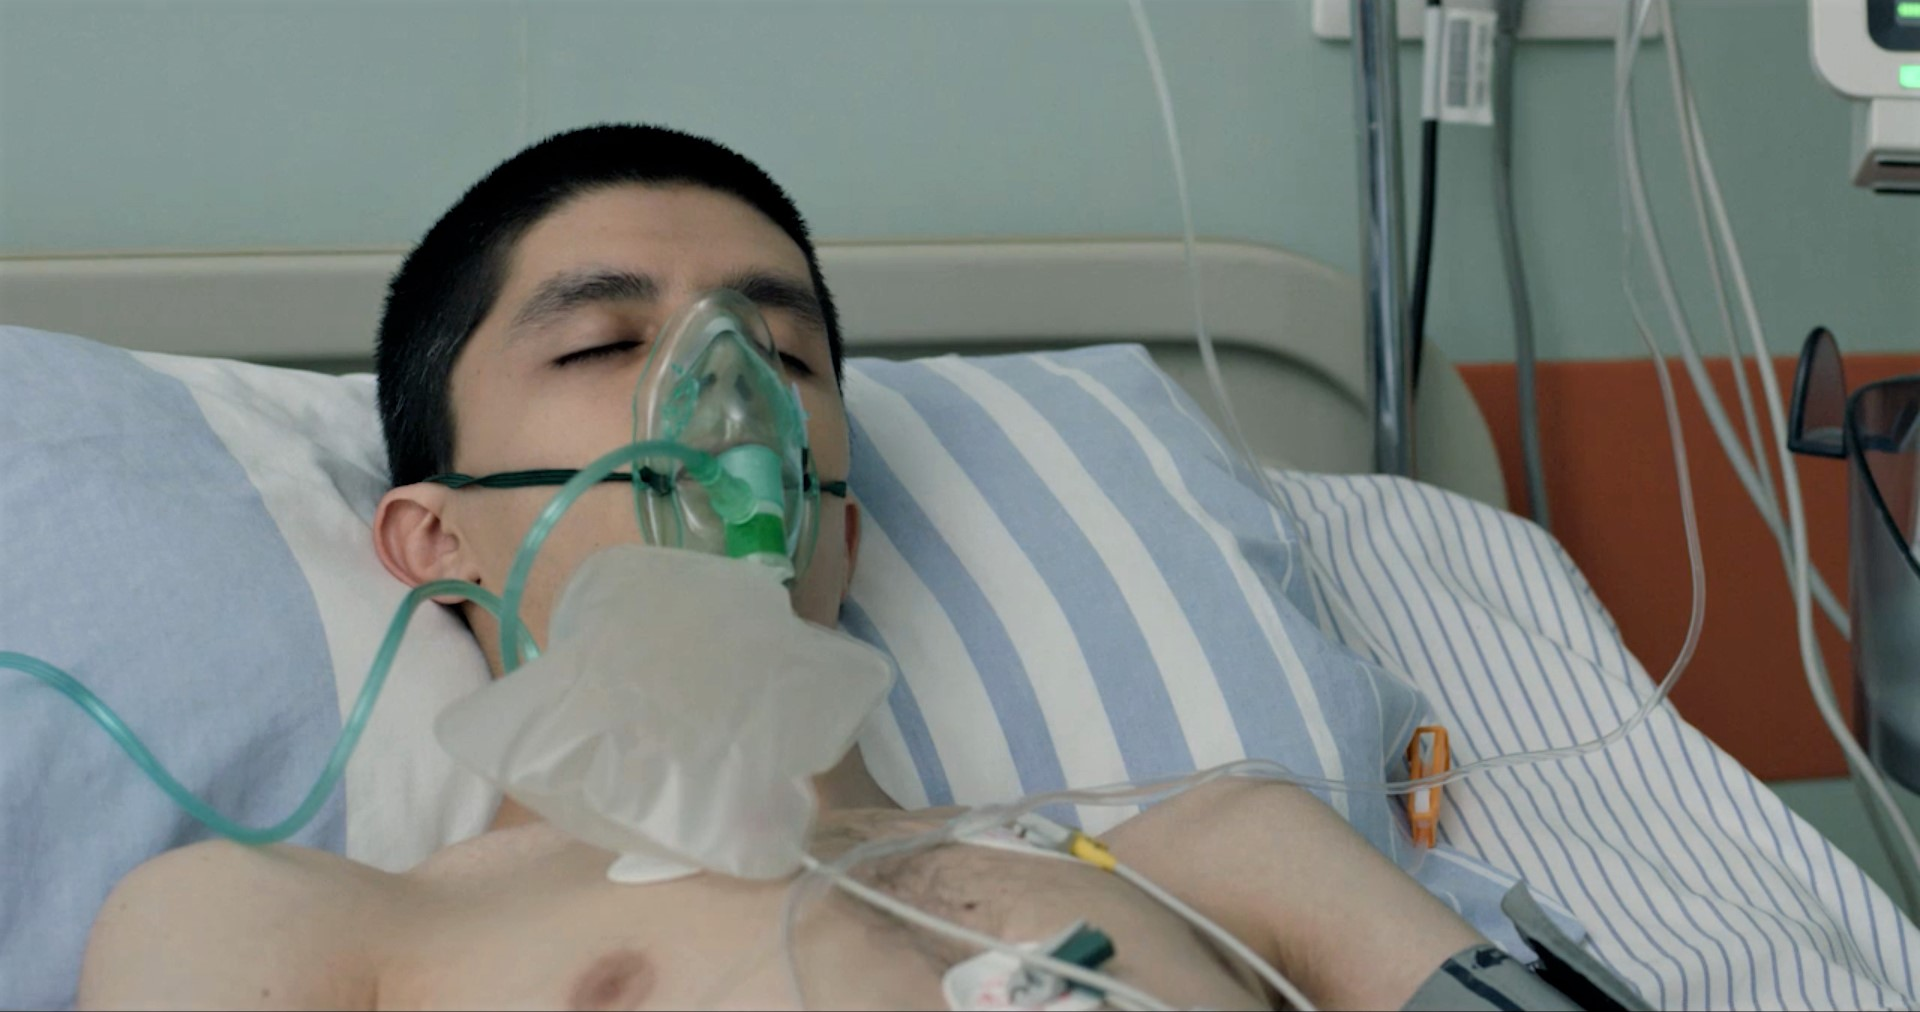 A hospital scene from the Romanian film 5 Minutes Too Late